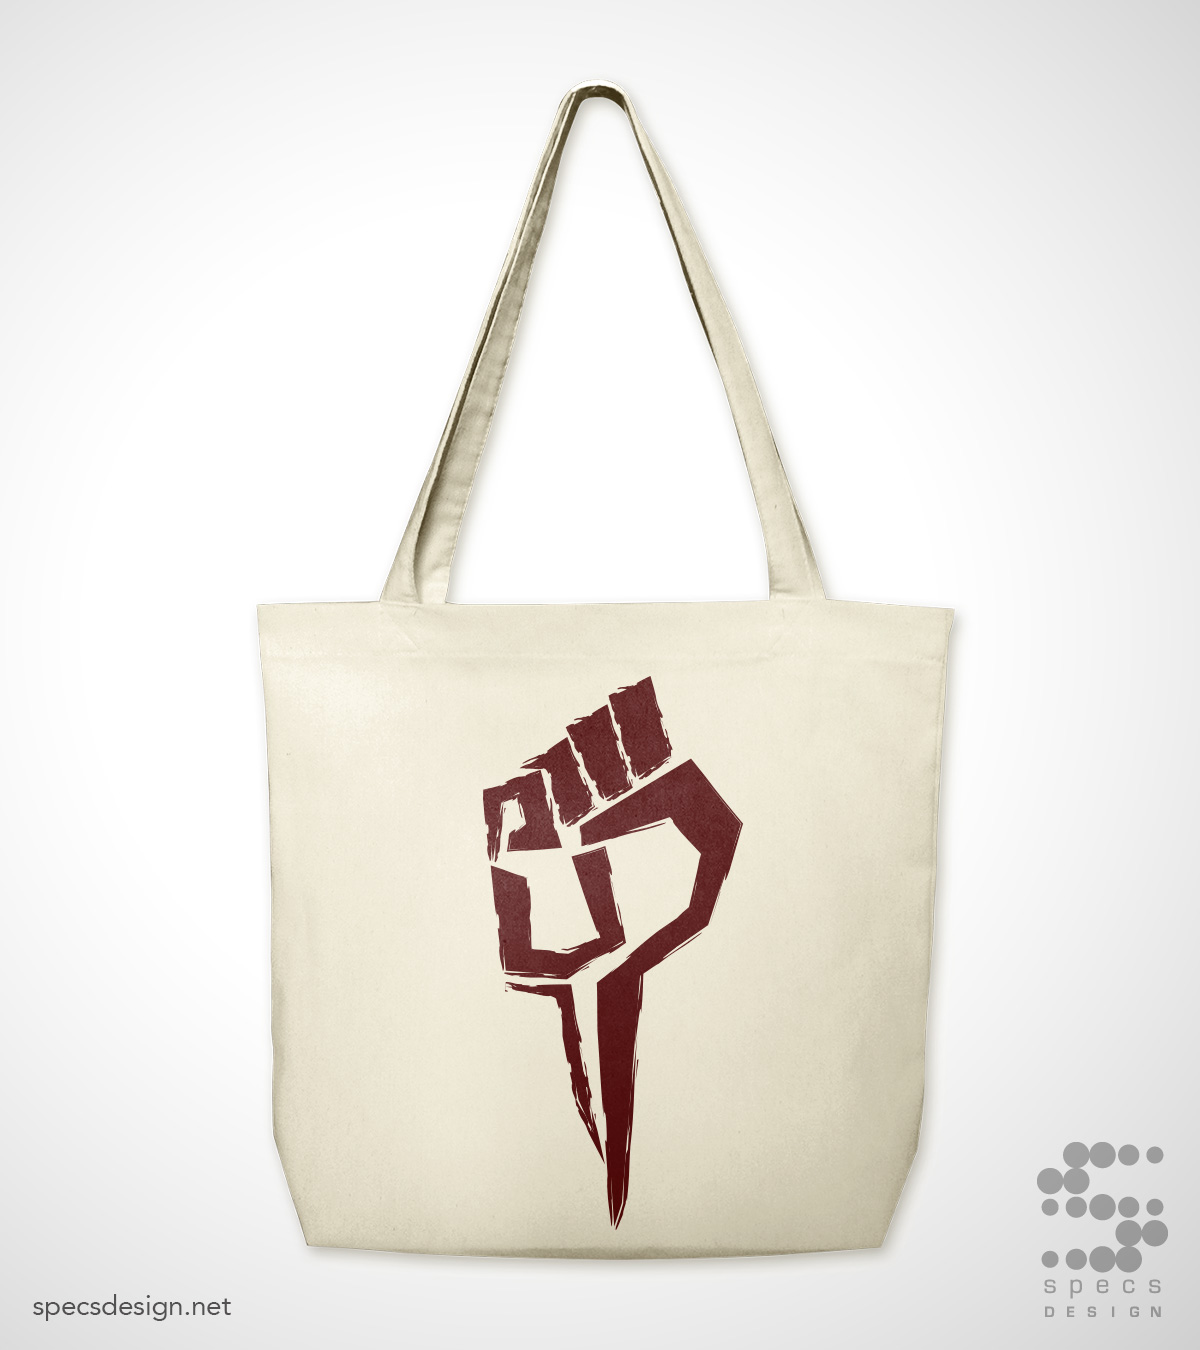 Bags for school bags - Specs Design Shop School Spirit Up Canvas Tote Bag